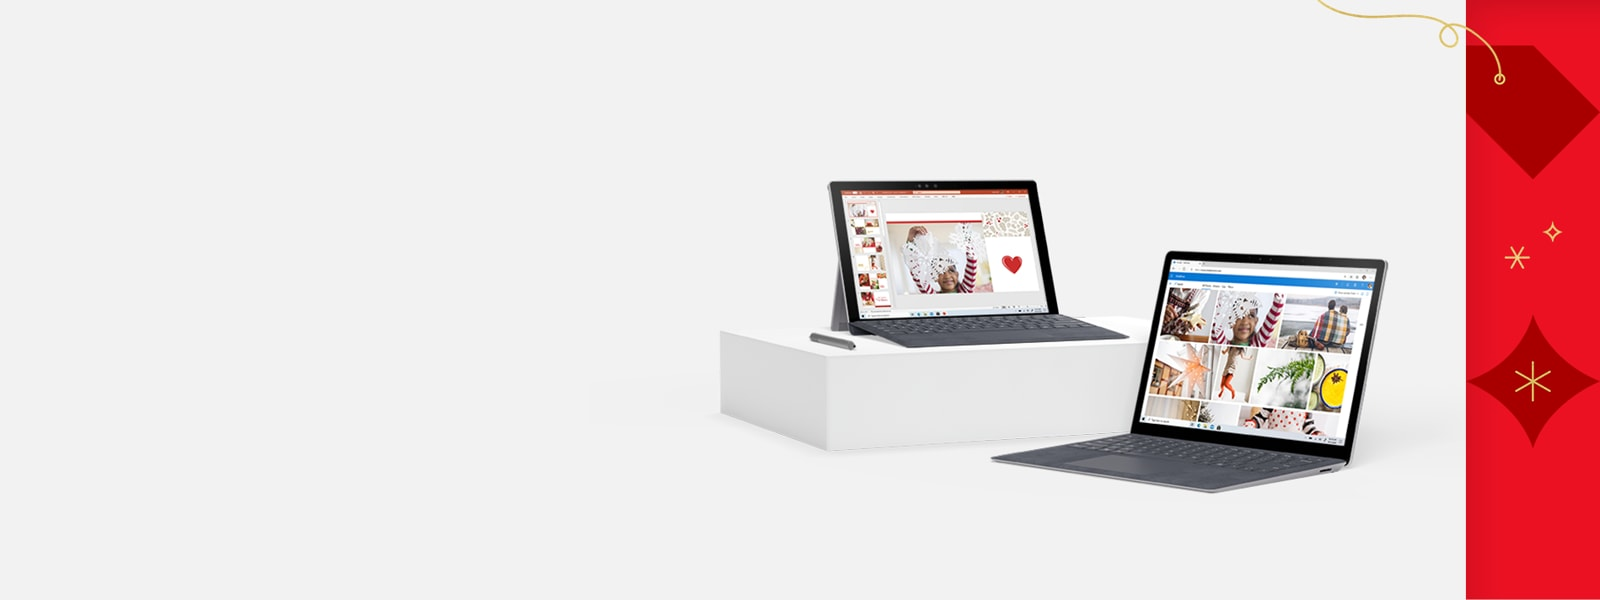 A Surface Pro 7 and Surface Laptop 3